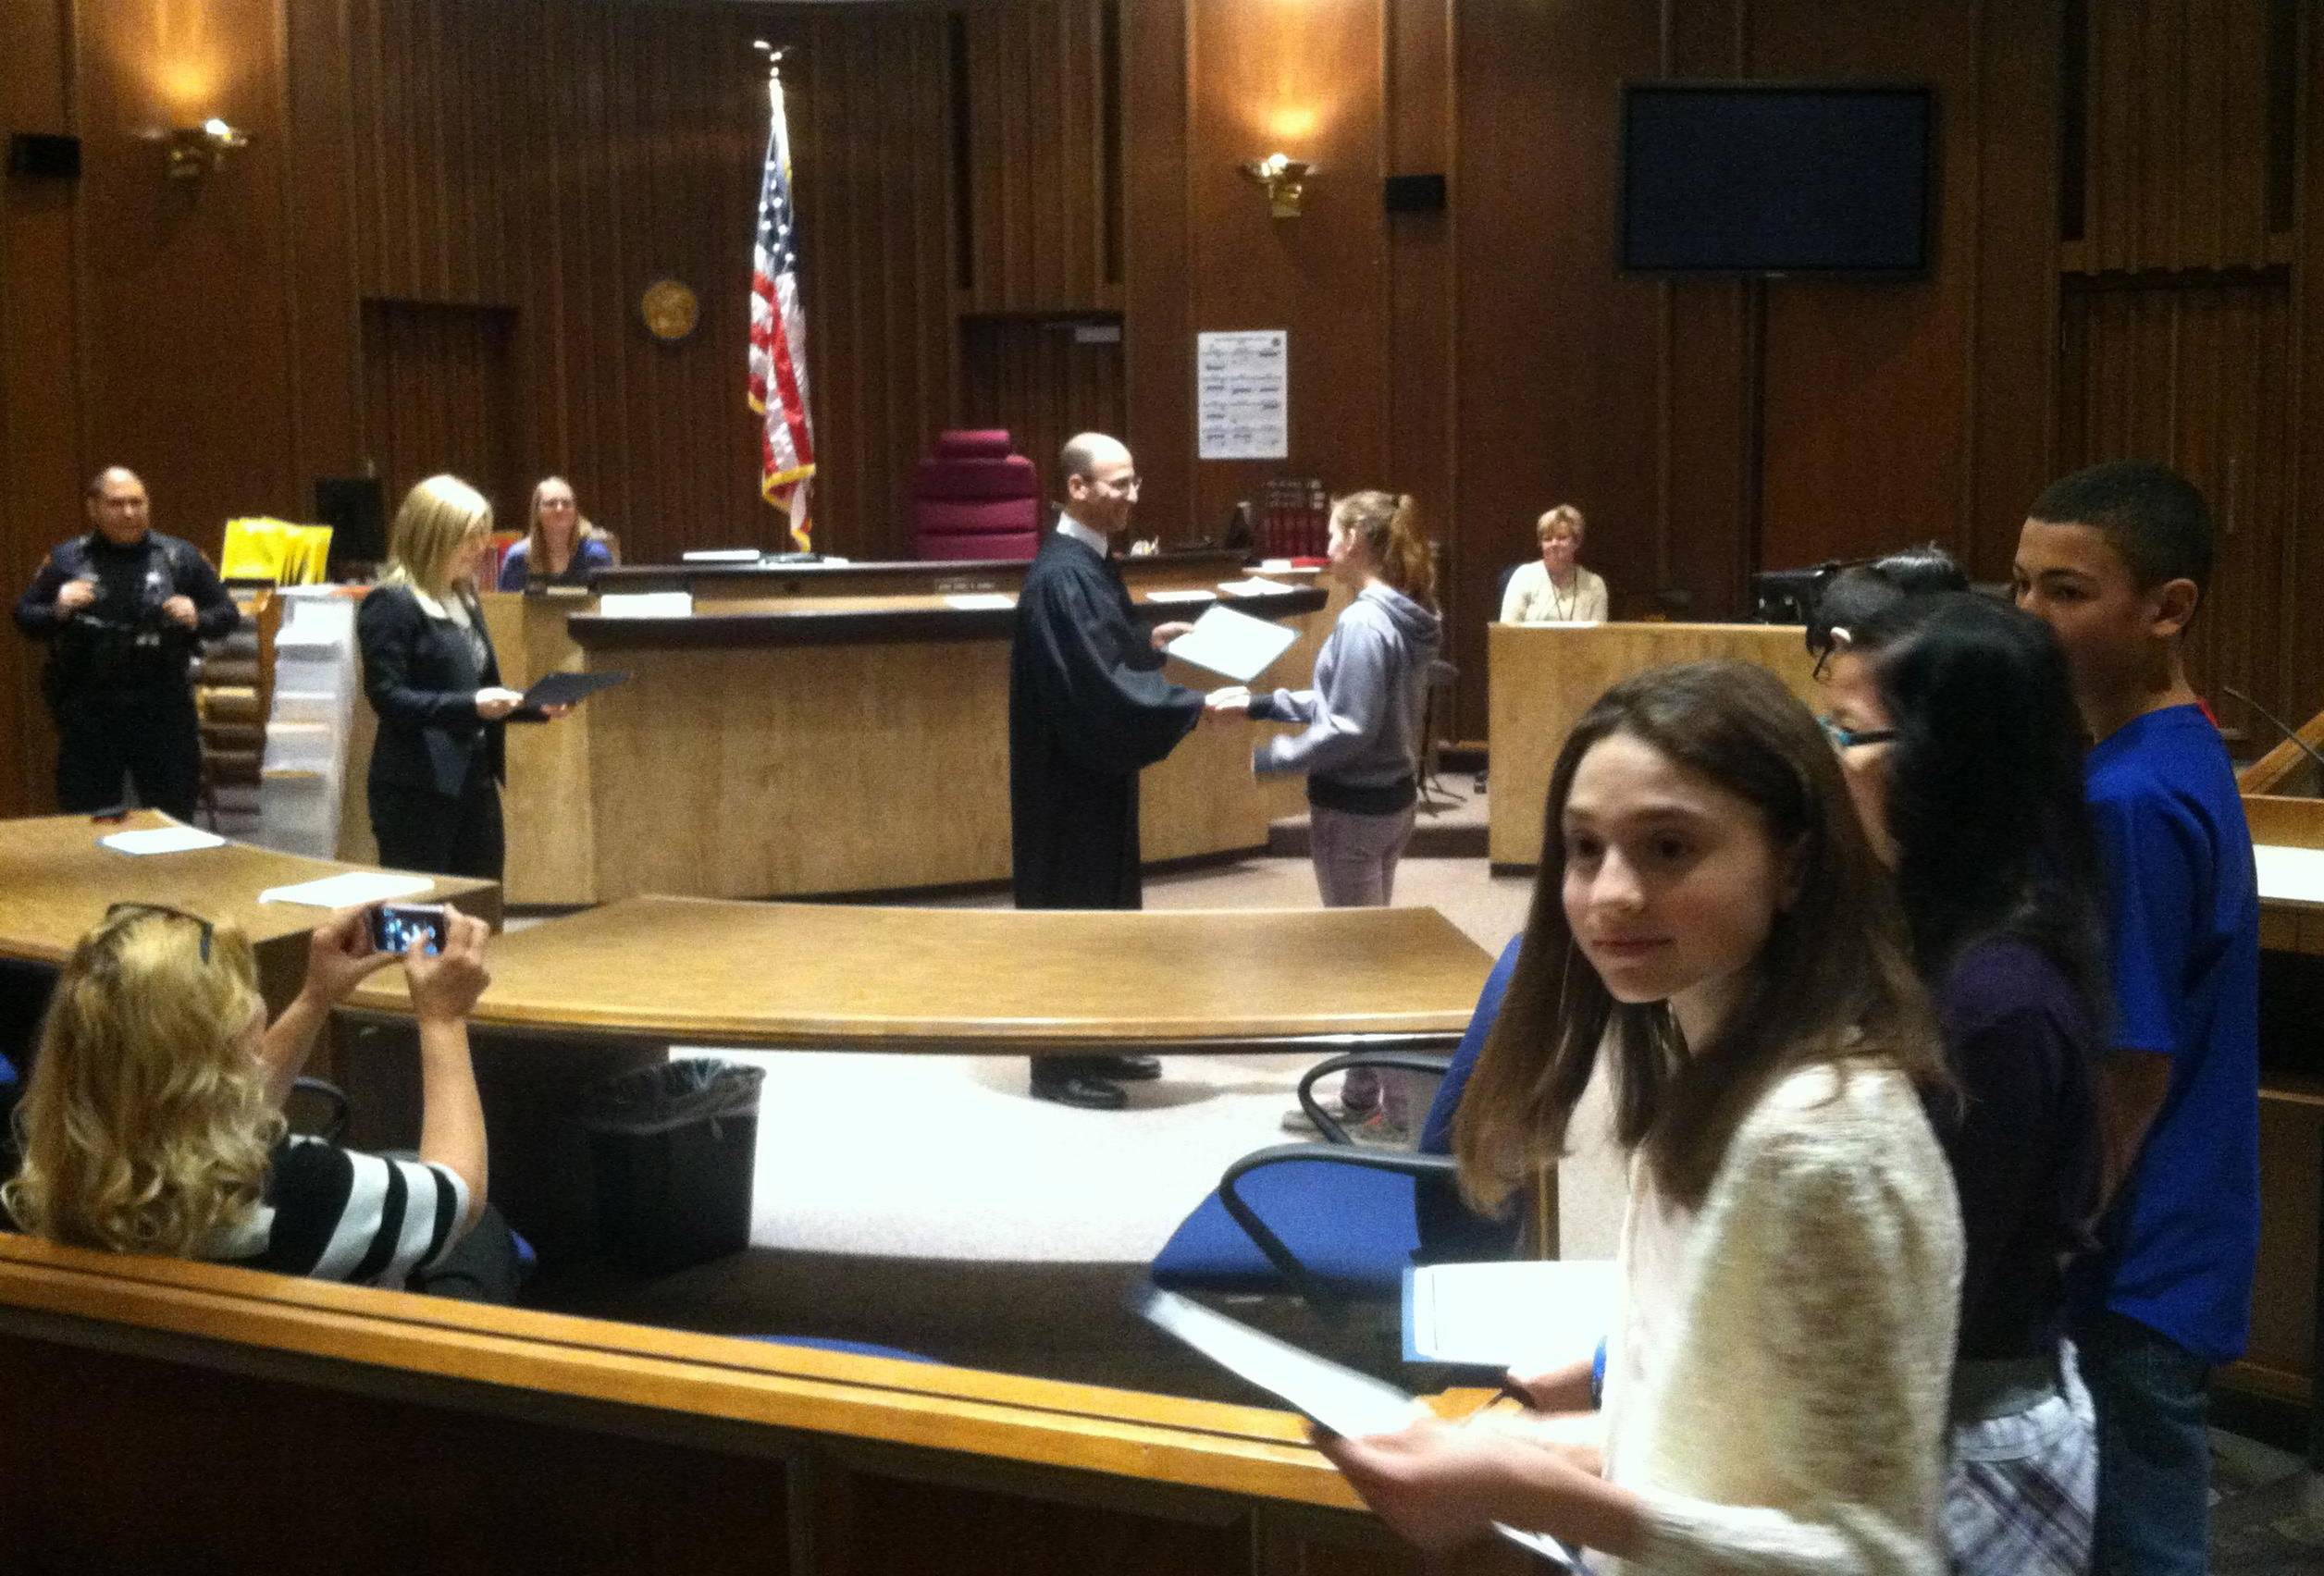 Lake County Judge Daniel Shanes hands out awards to Mundelein-area middle school students during an achievement ceremony Friday at the Lake County courthouse.